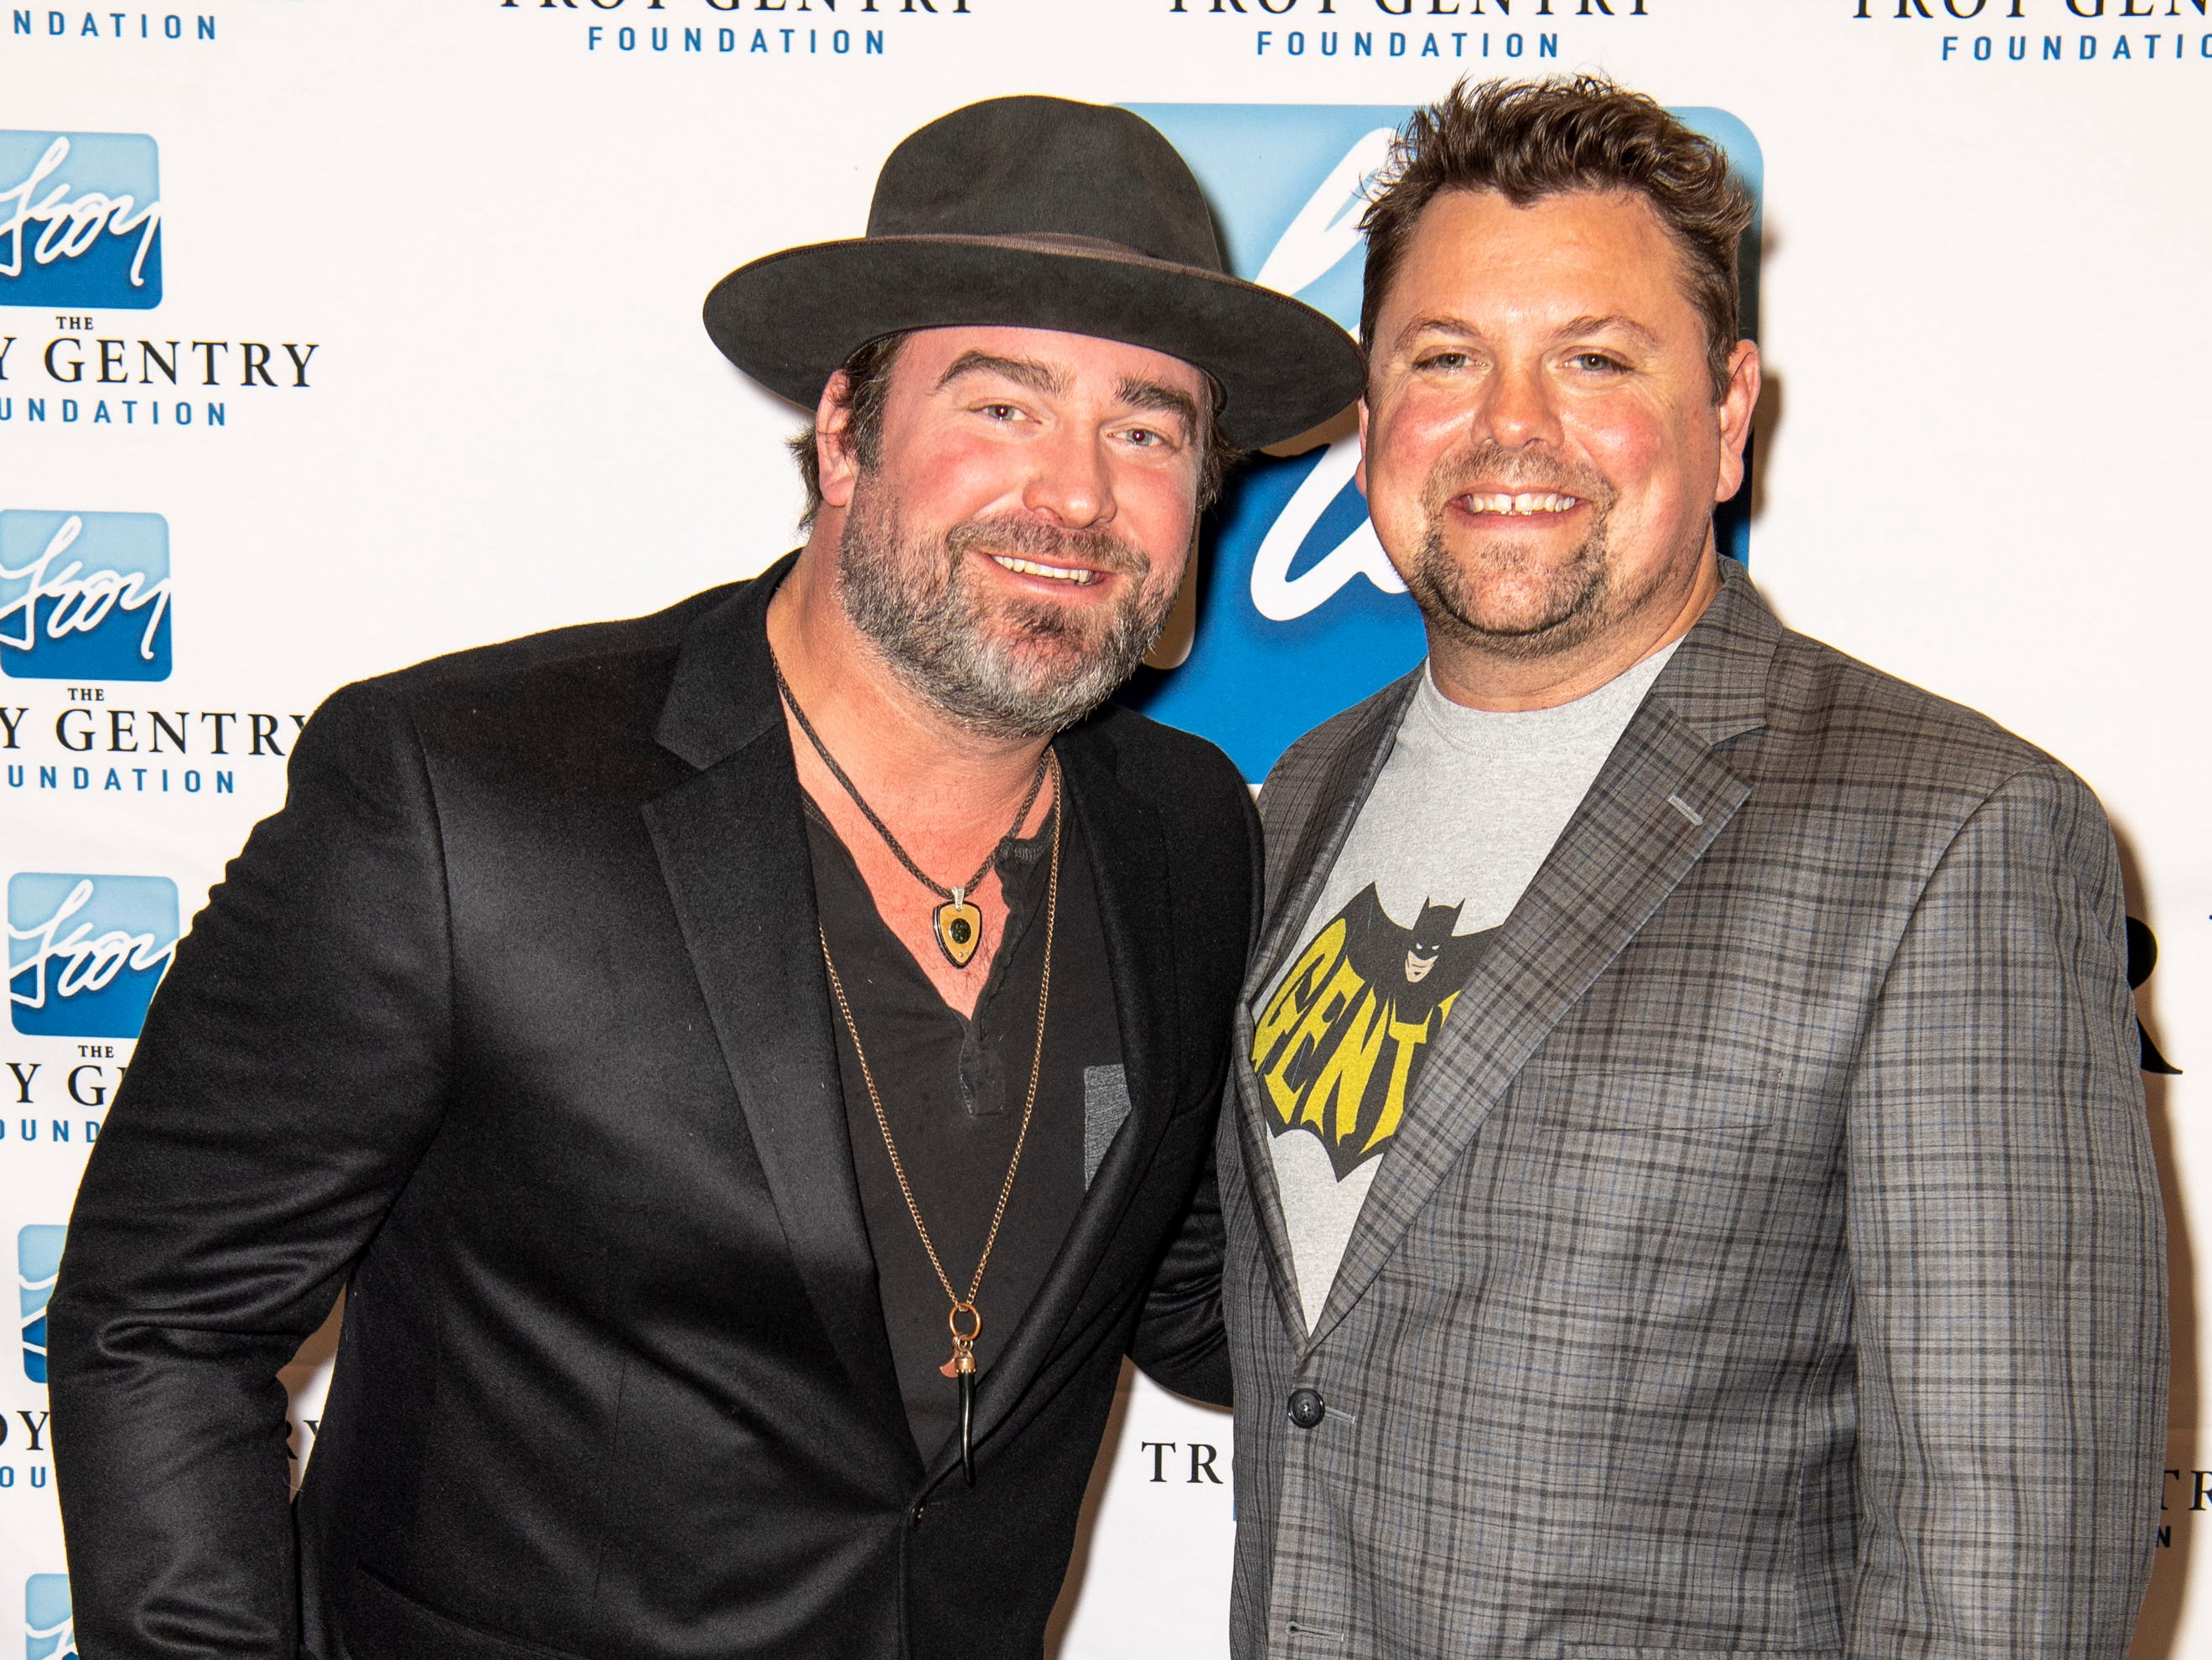 Lee Brice and Storme Warren on the red carpet before the C'Ya On The Flipside Benefit Concert at the Grand Ole Opry House in Nashville, Tenn., Wednesday, Jan. 9, 2019.